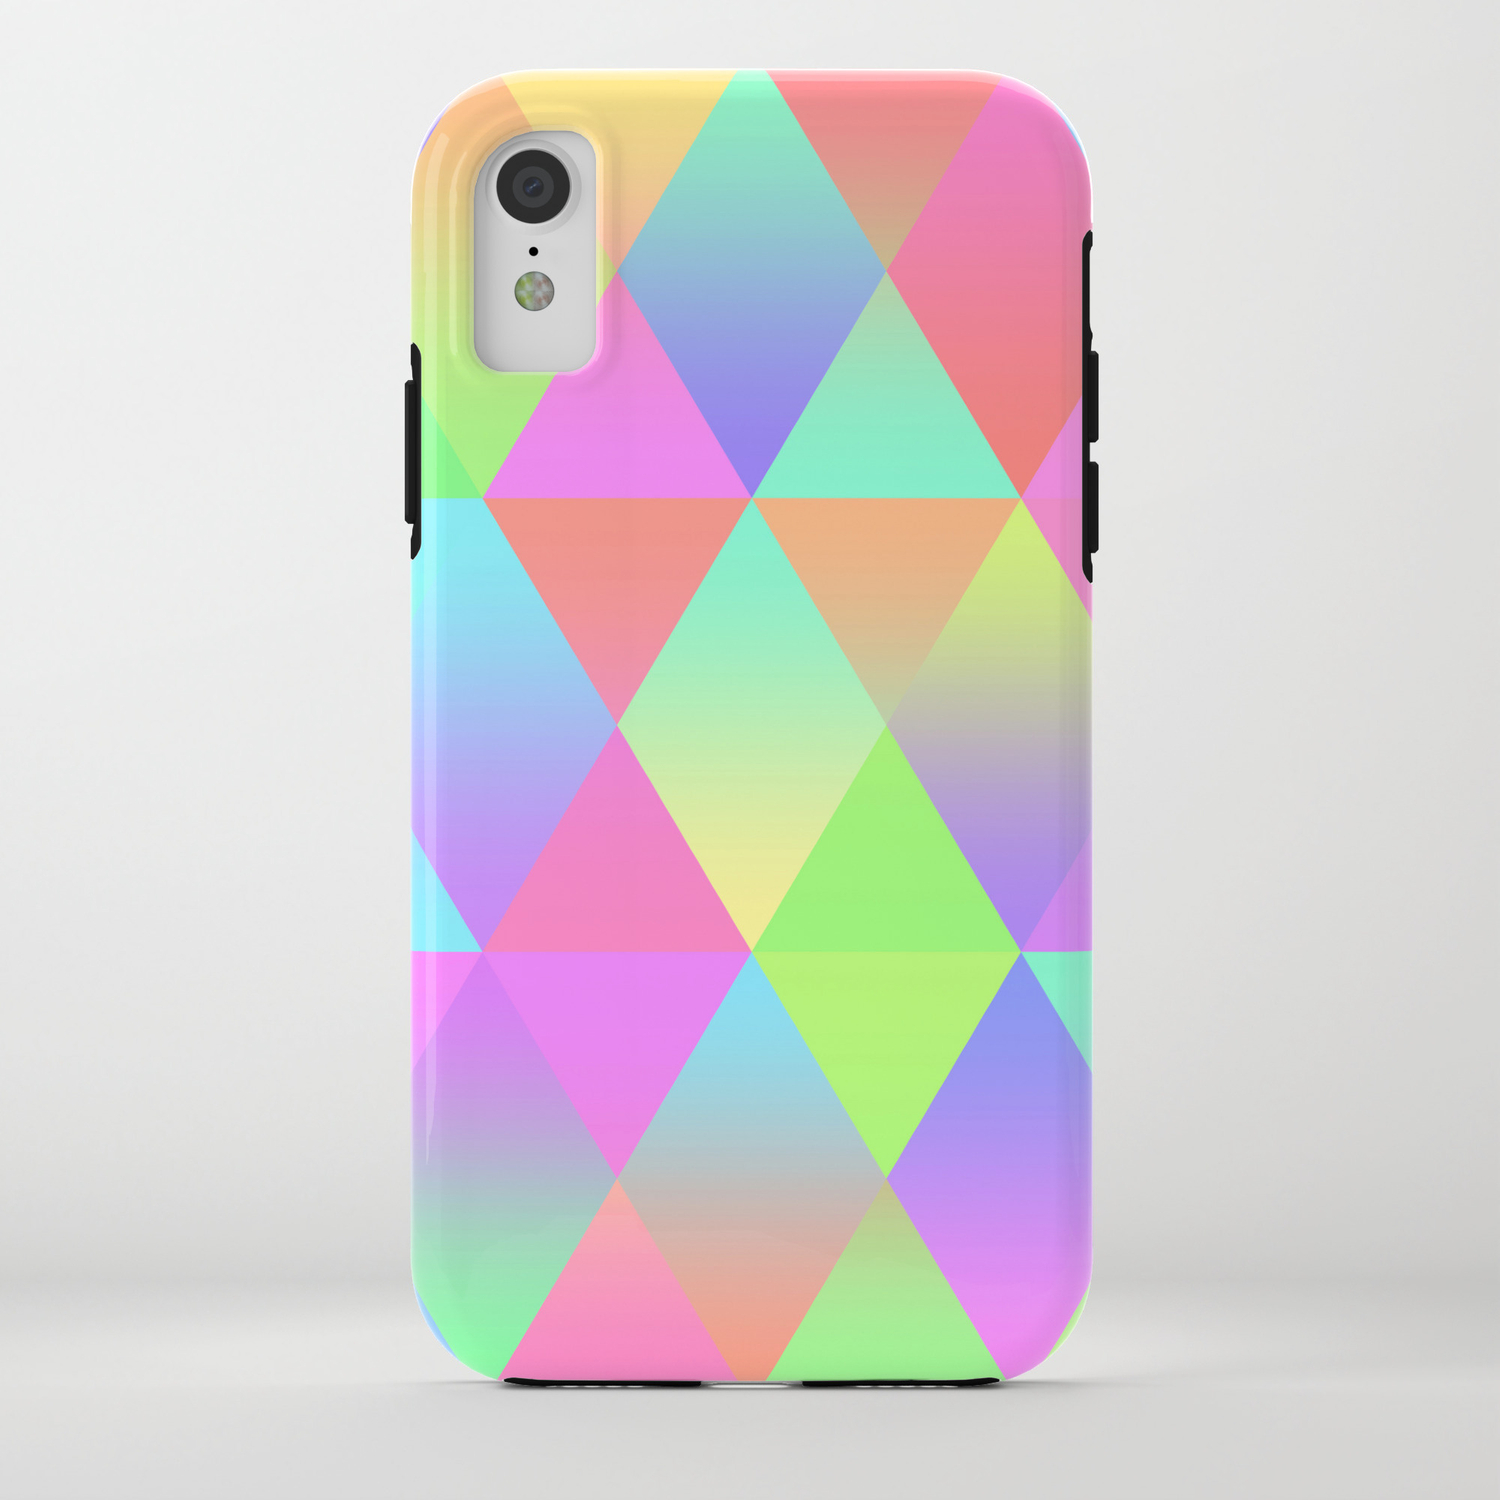 53a04873db4ec Colorful Geometric Pattern Prism Holographic Foil Triangle Texture iPhone  Case